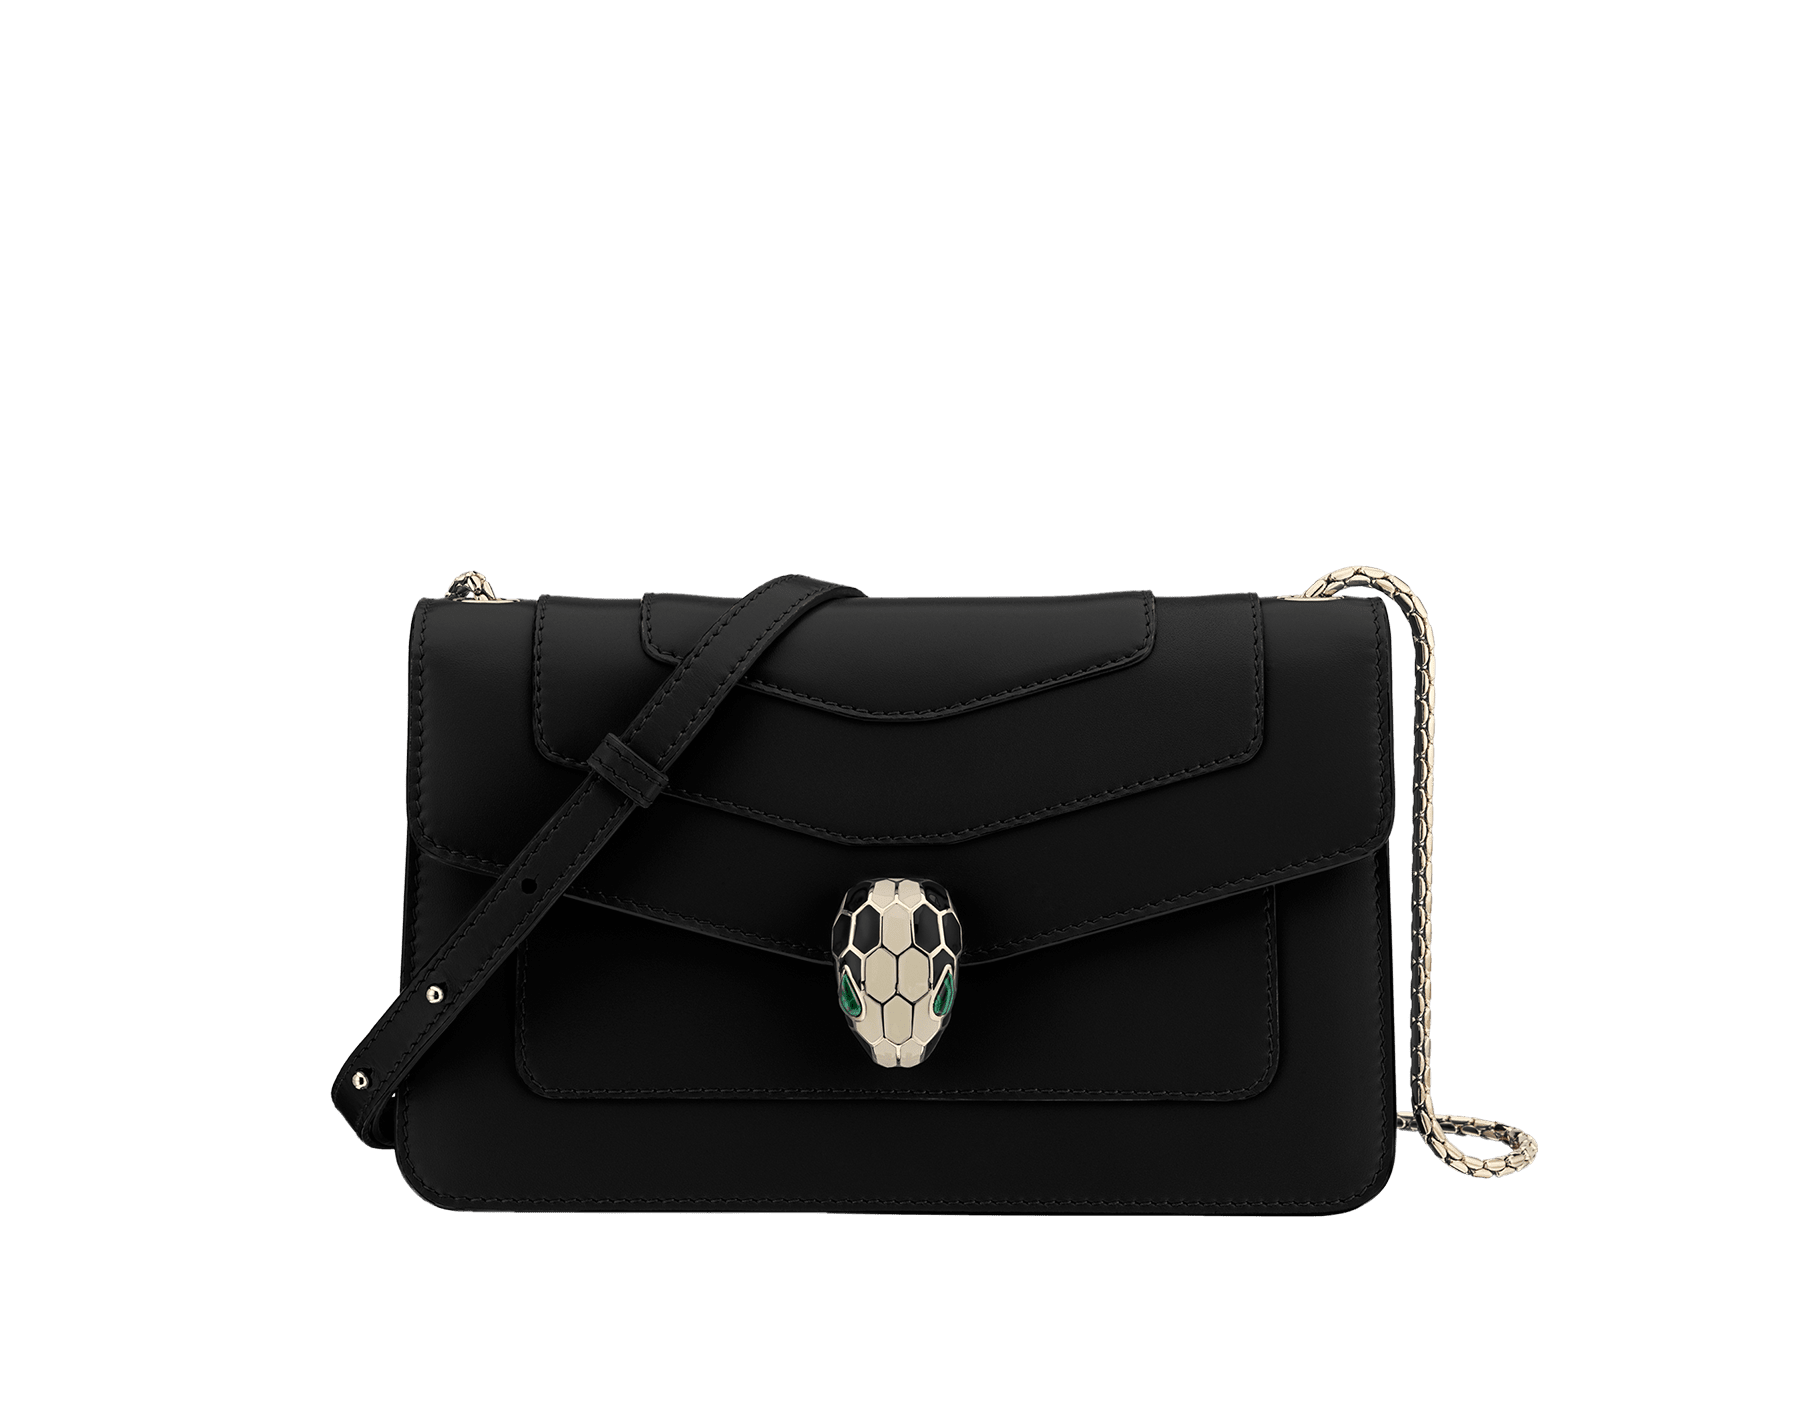 Black calf leather shoulder bag with brass light gold plated black and white enamel Serpenti head closure with malachite eyes. One open pocket and adjustable crossbody snake chain. 38102 image 1